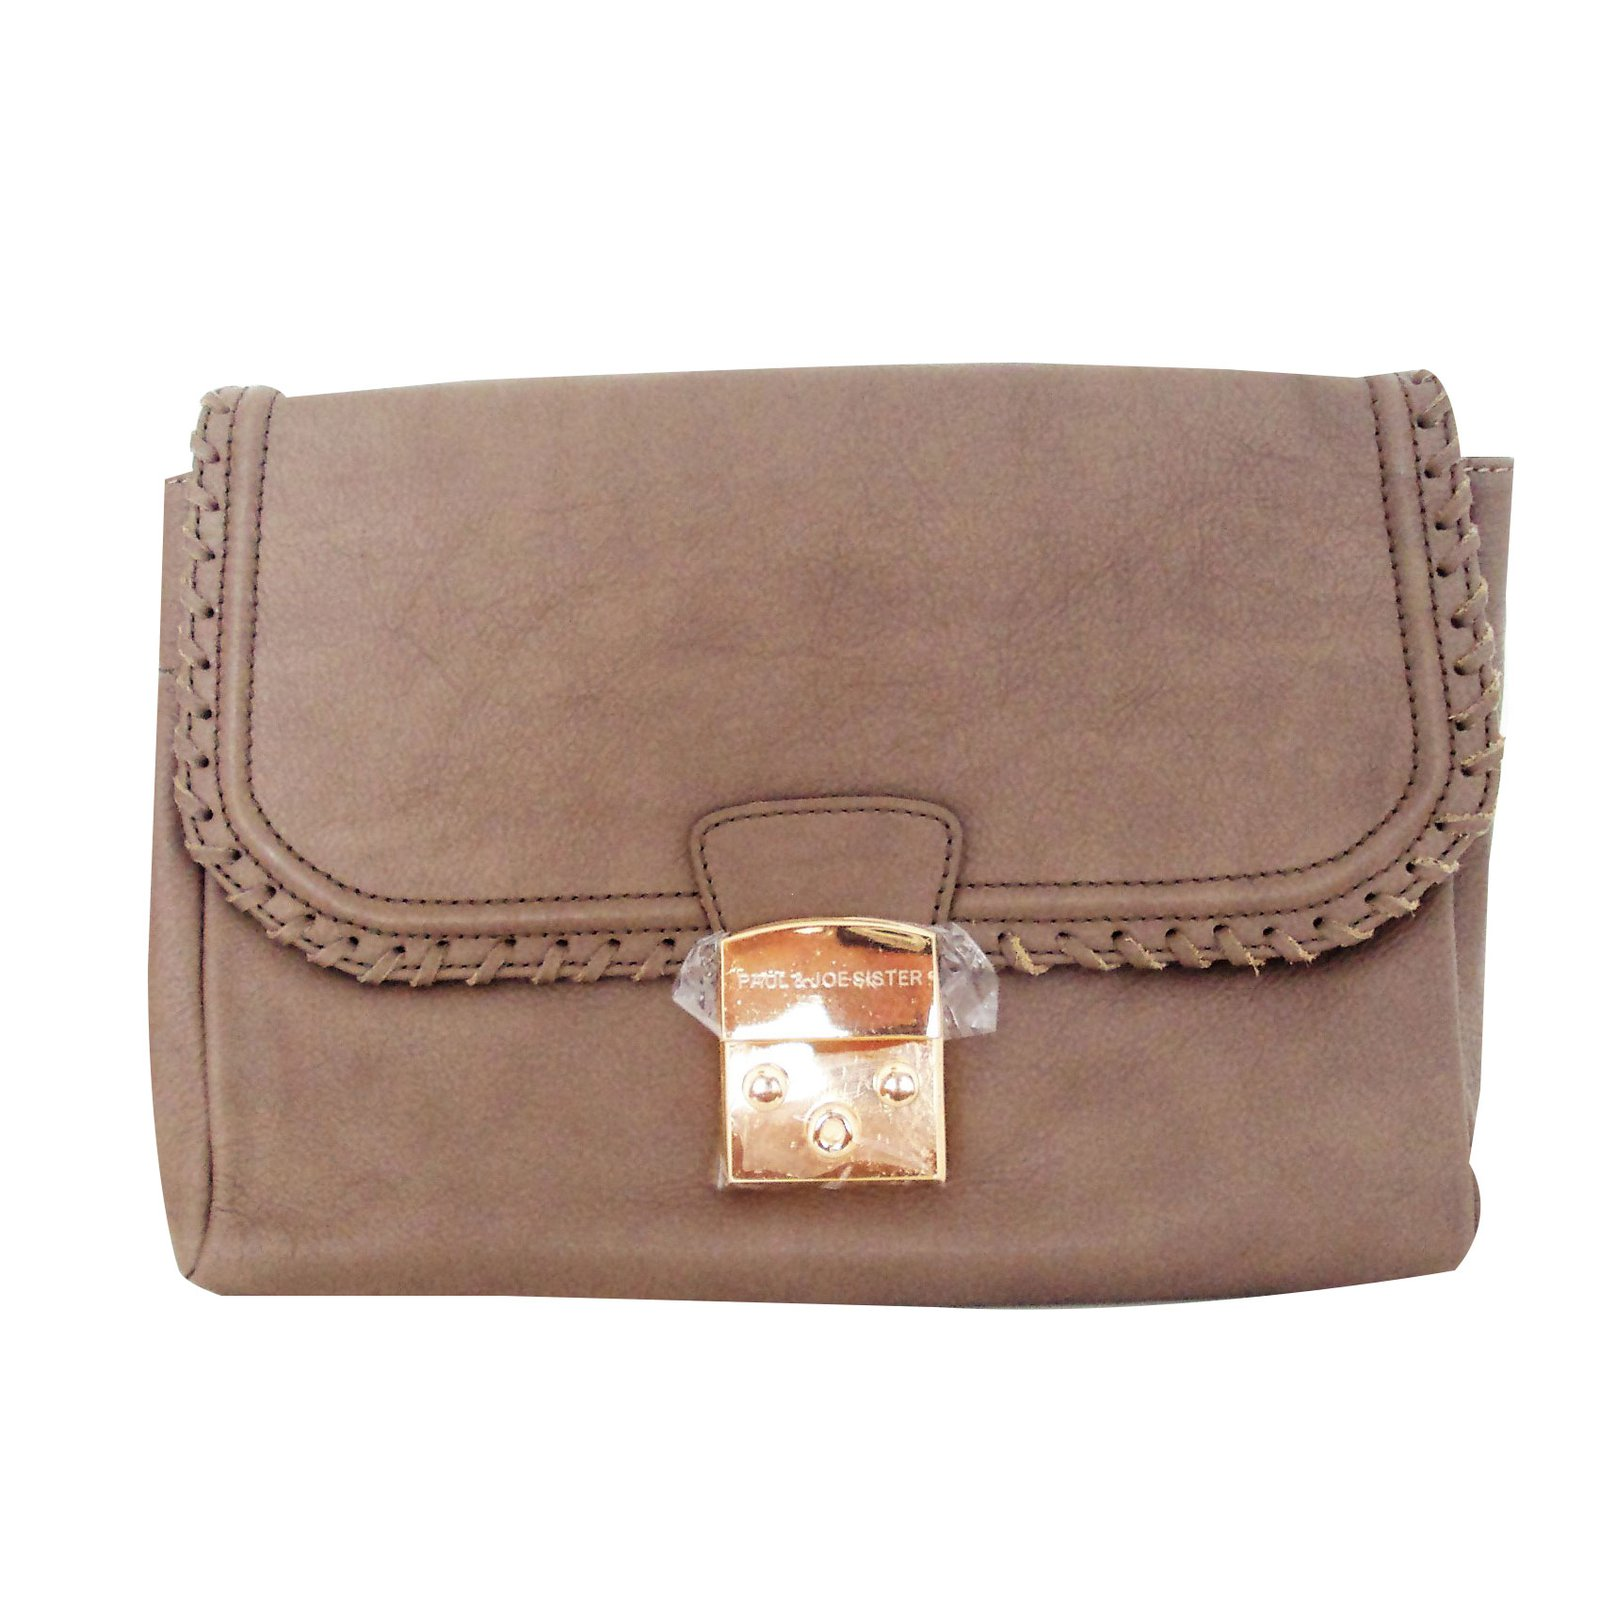 Paul Joe Sister Pouch Clutch Bags Leather Brown Ref 38501